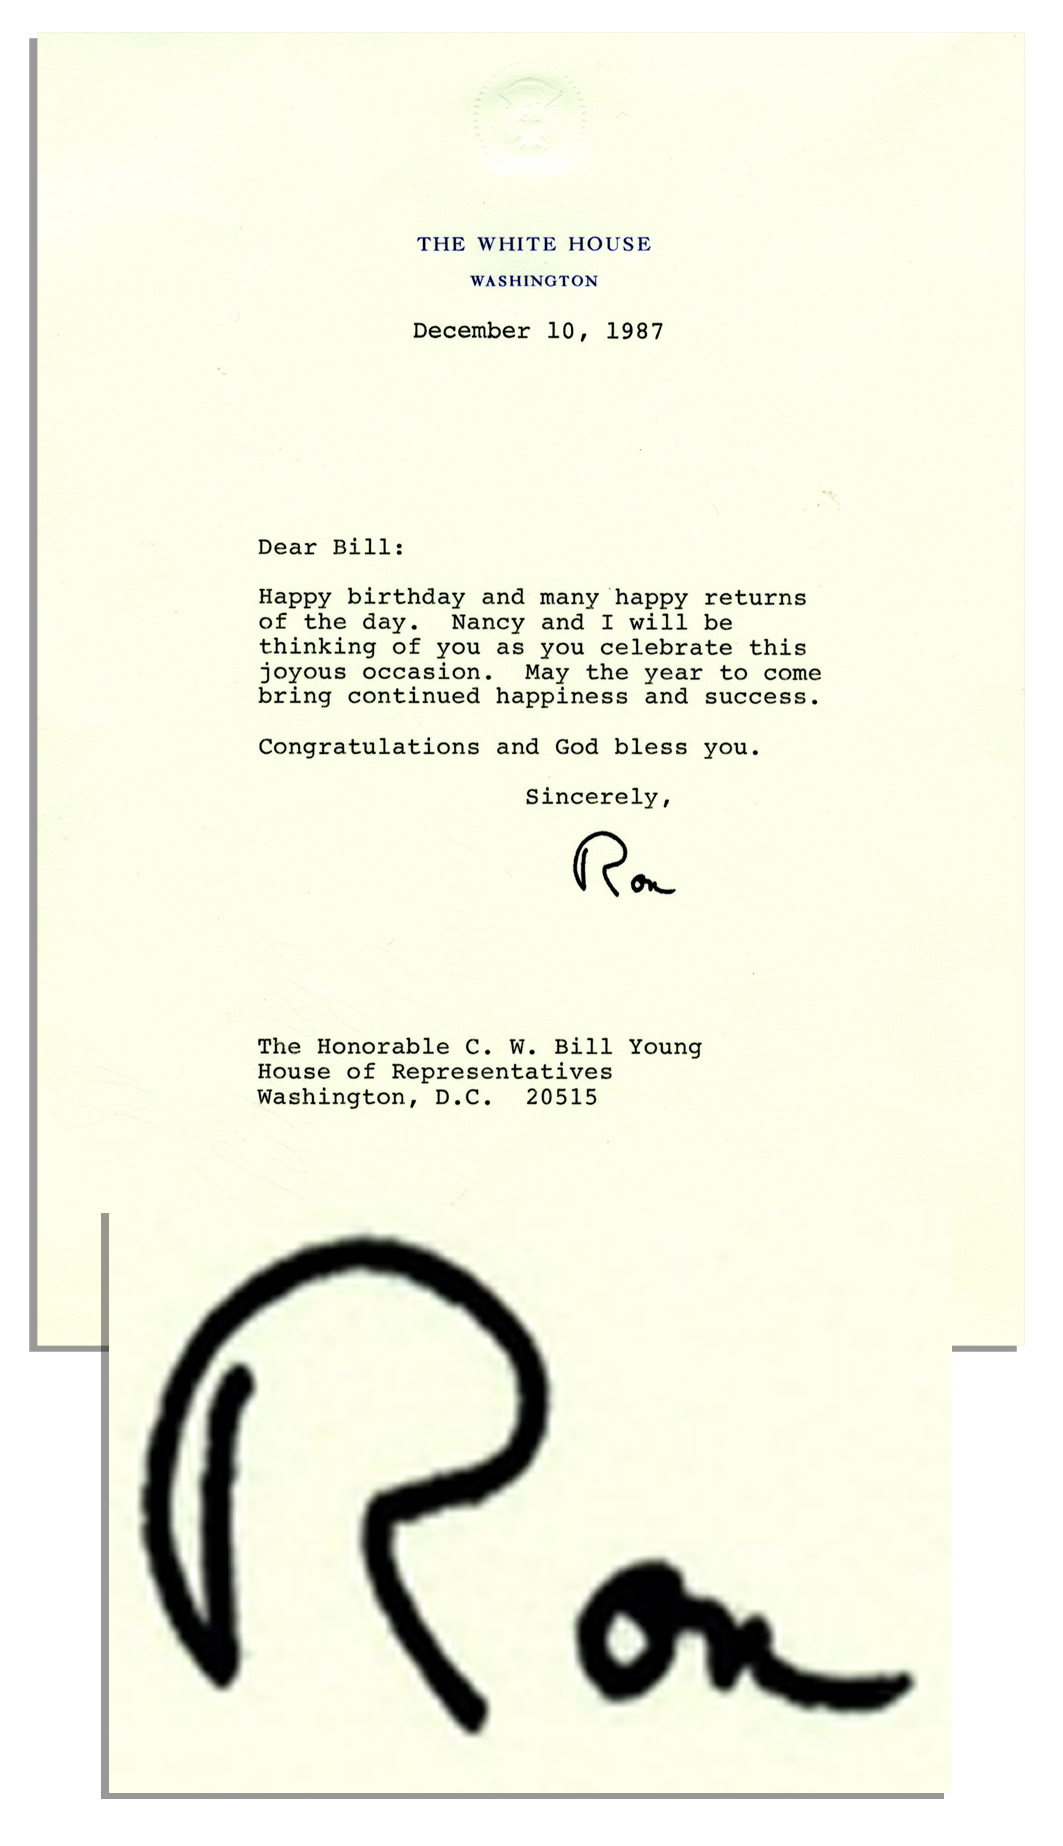 ronald reagan typed letter signed as president sending birthday wishes